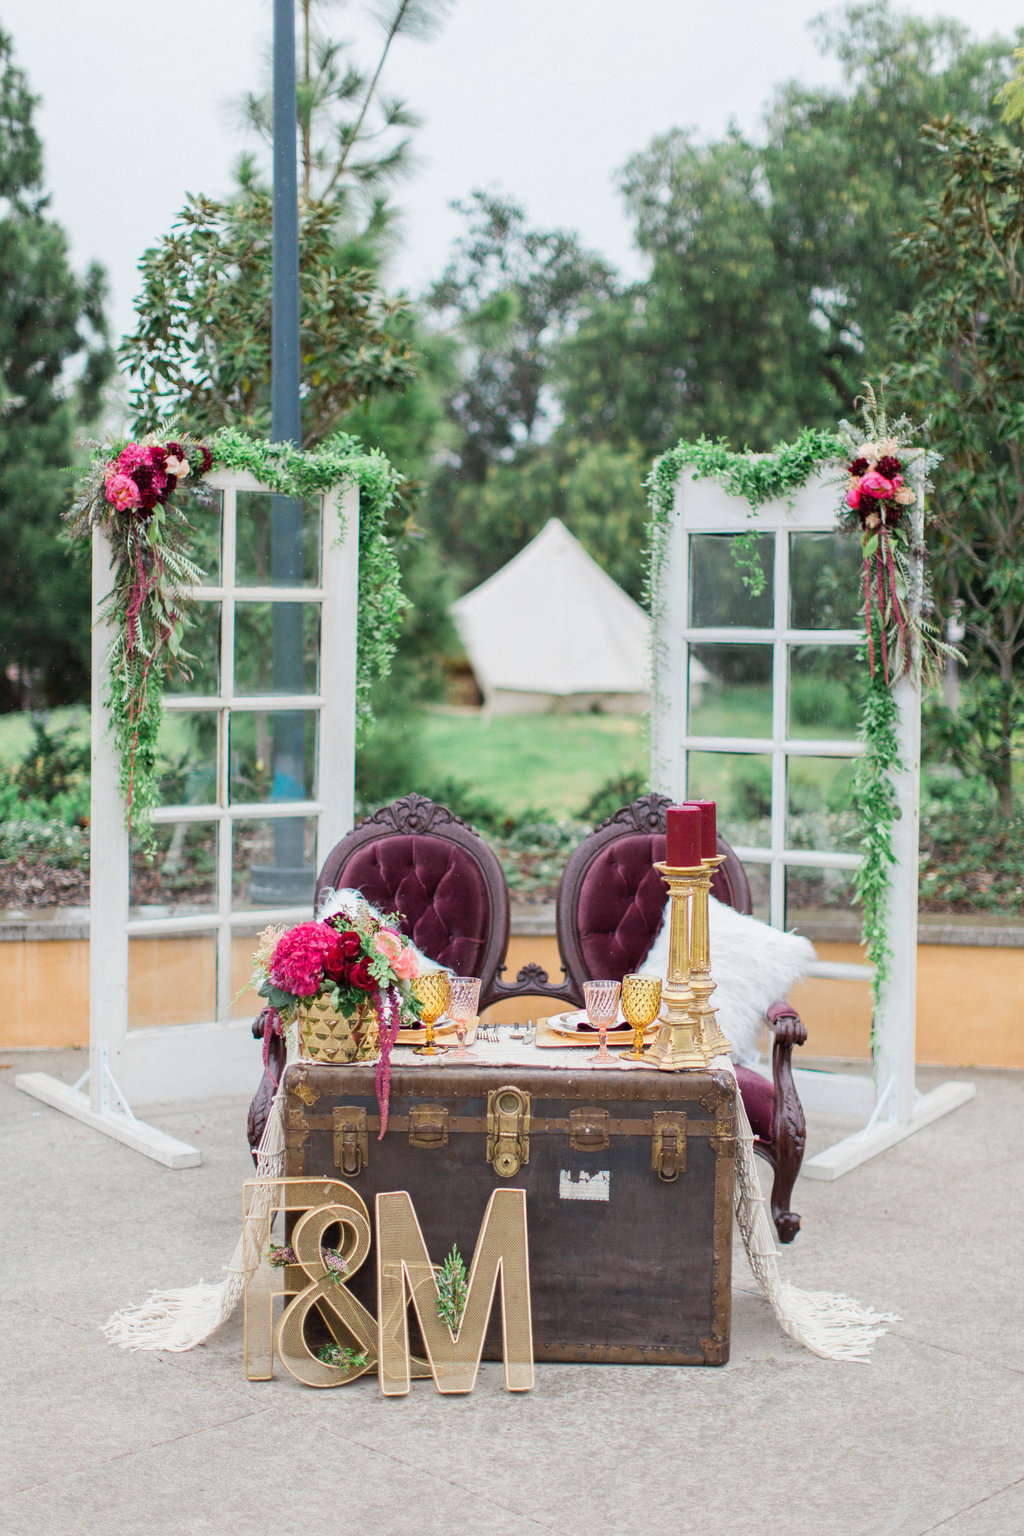 Los-Robles-Gardens-Styled-Shoot-105.jpg